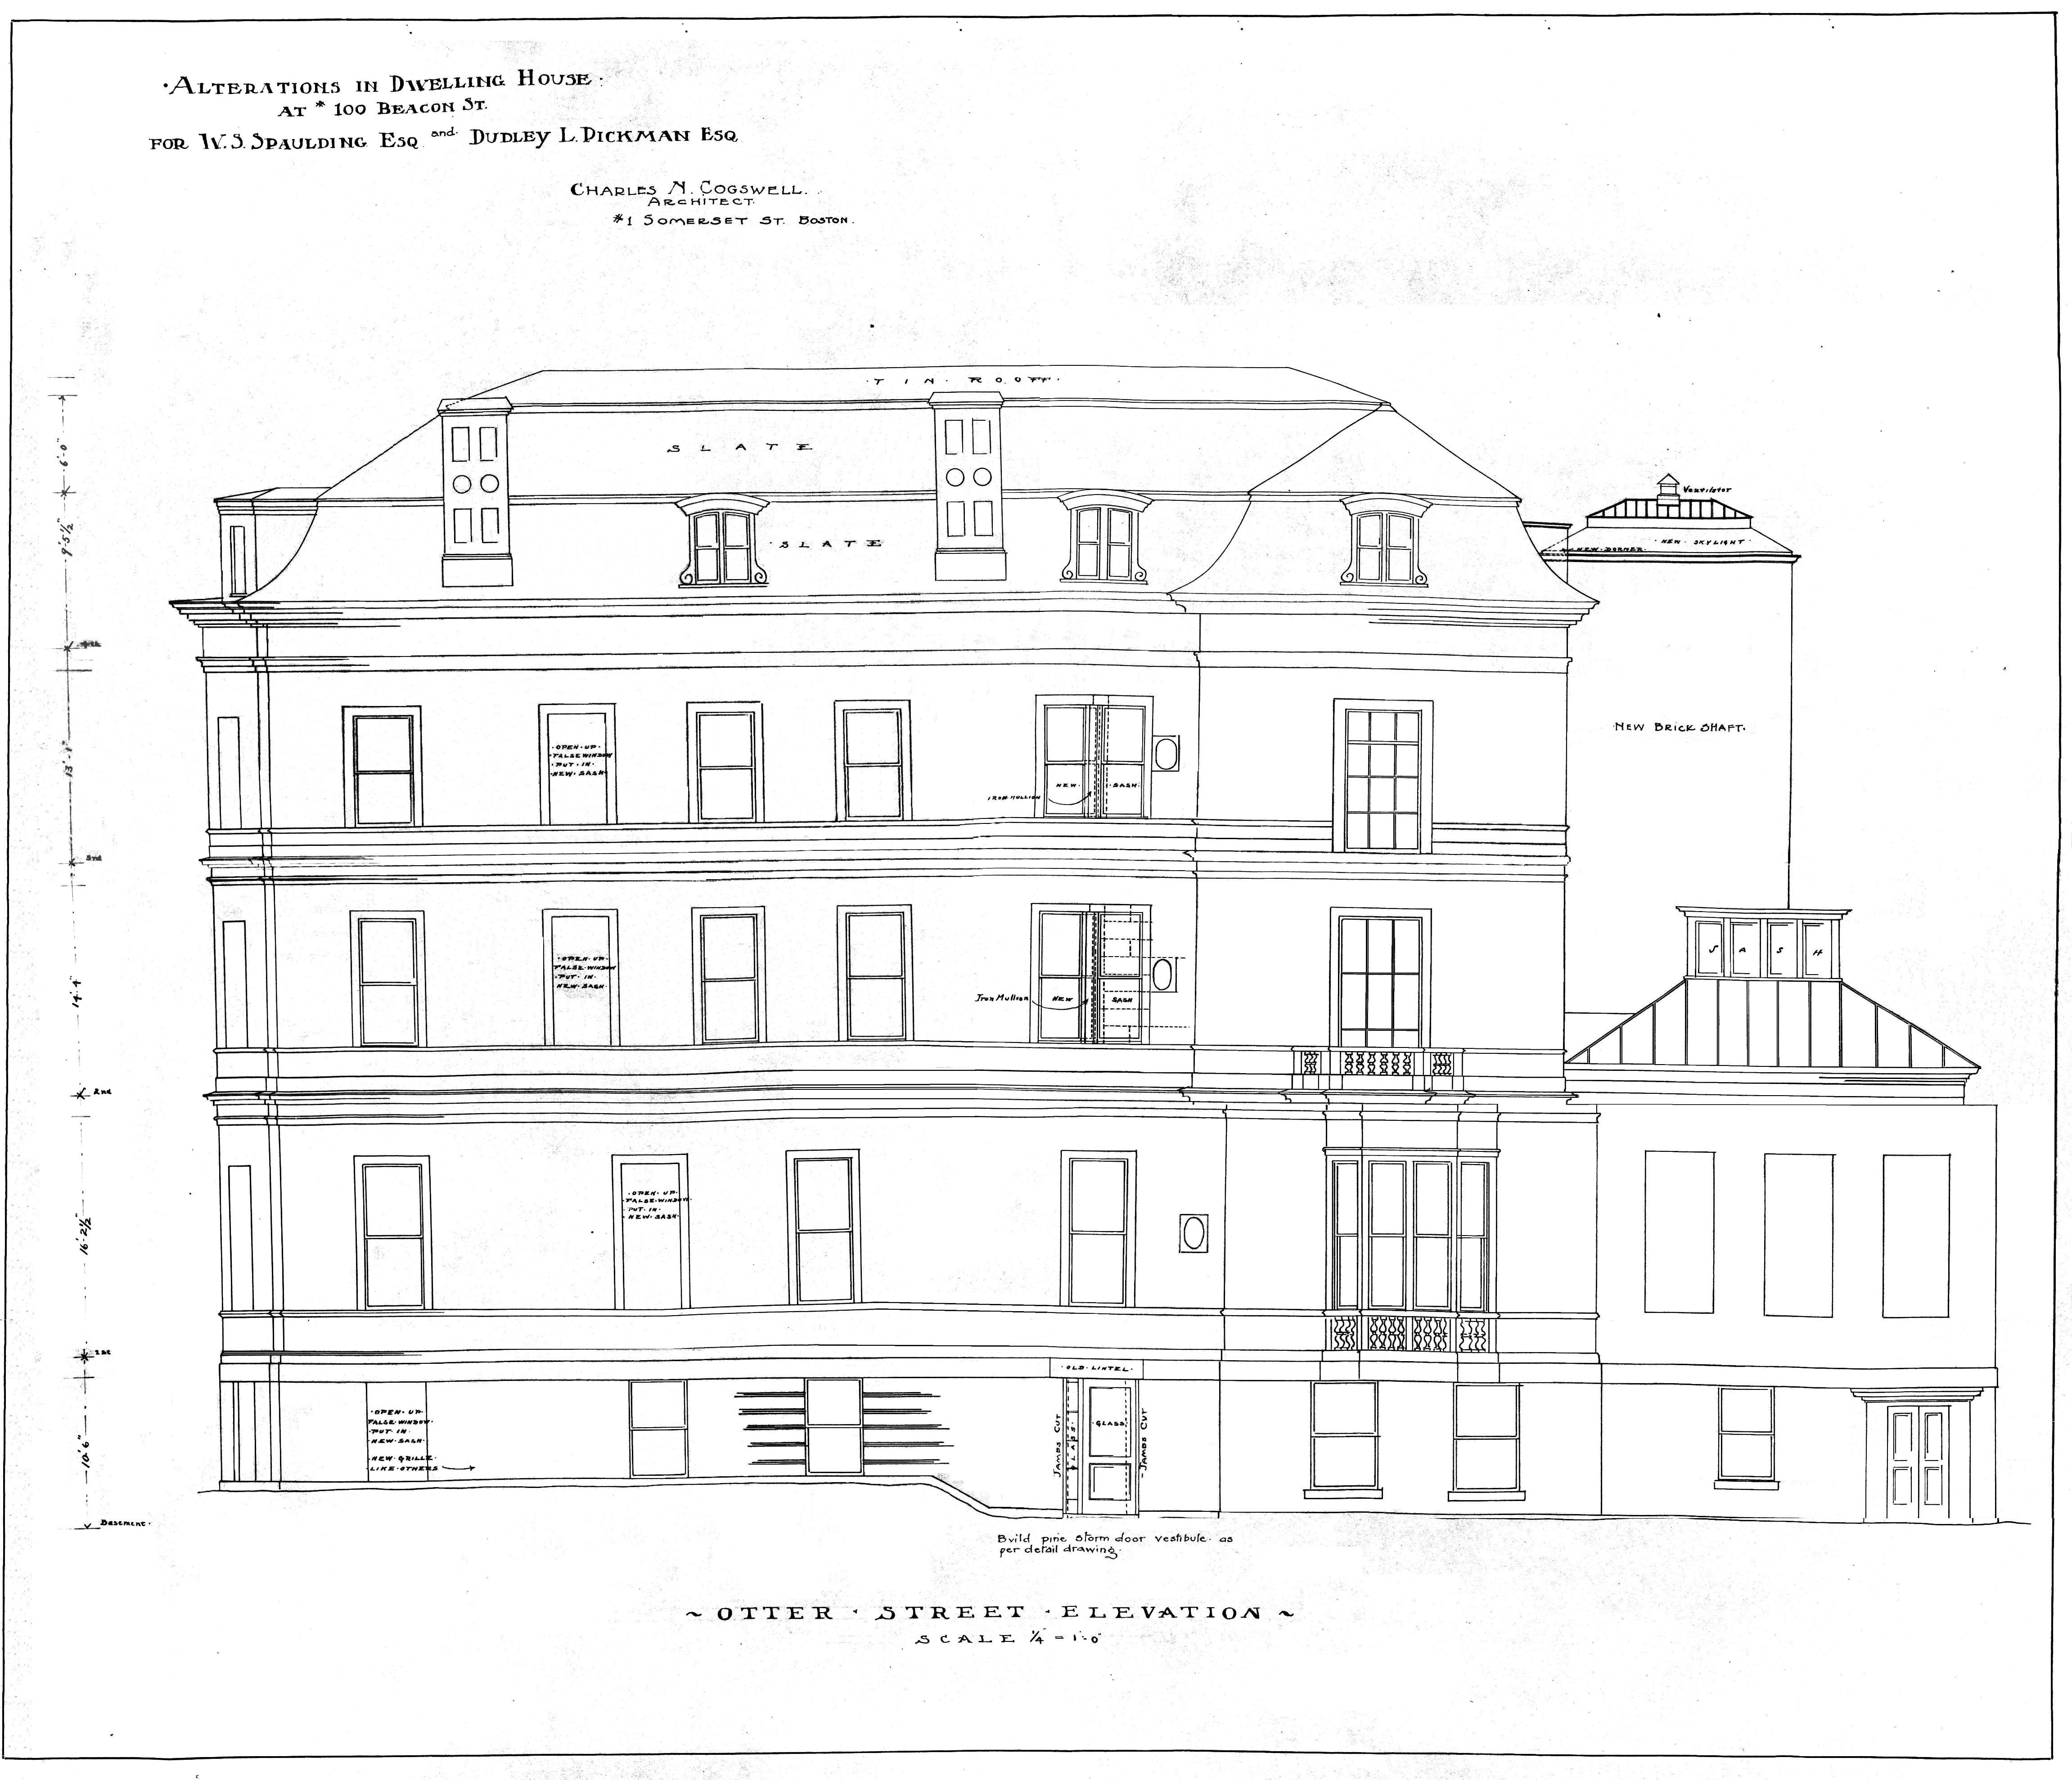 100 beacon back bay houses beac 100 otter st elevation bpl blueprint bw 1 malvernweather Choice Image